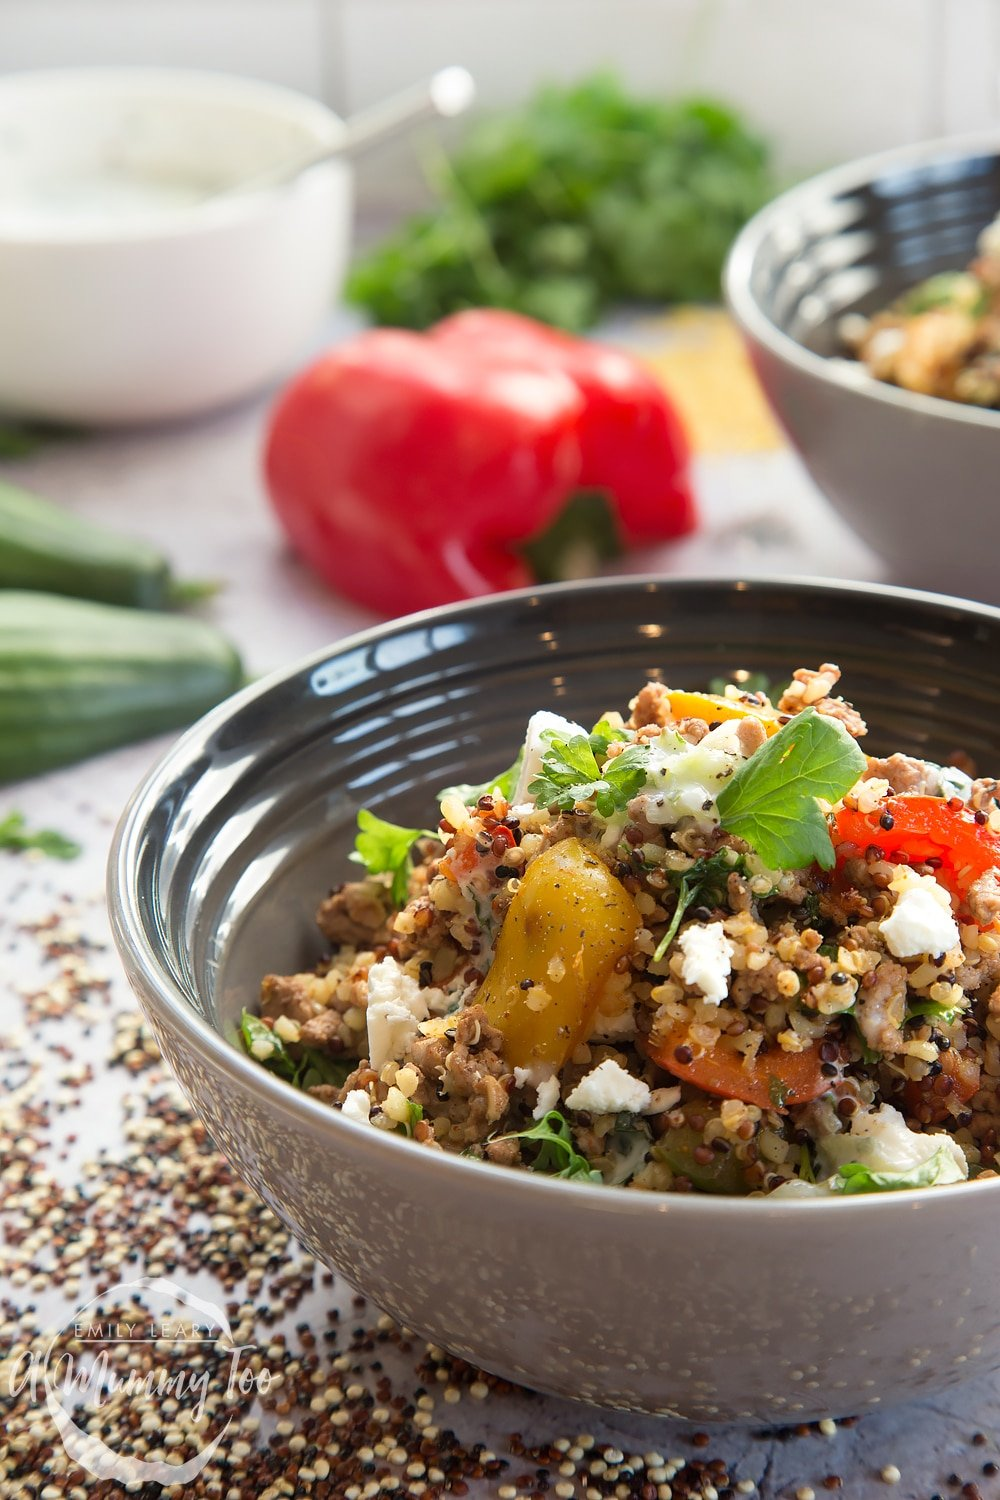 Aromatic lamb and warm grain salad - the perfect midweek dinner, made with quality lamb